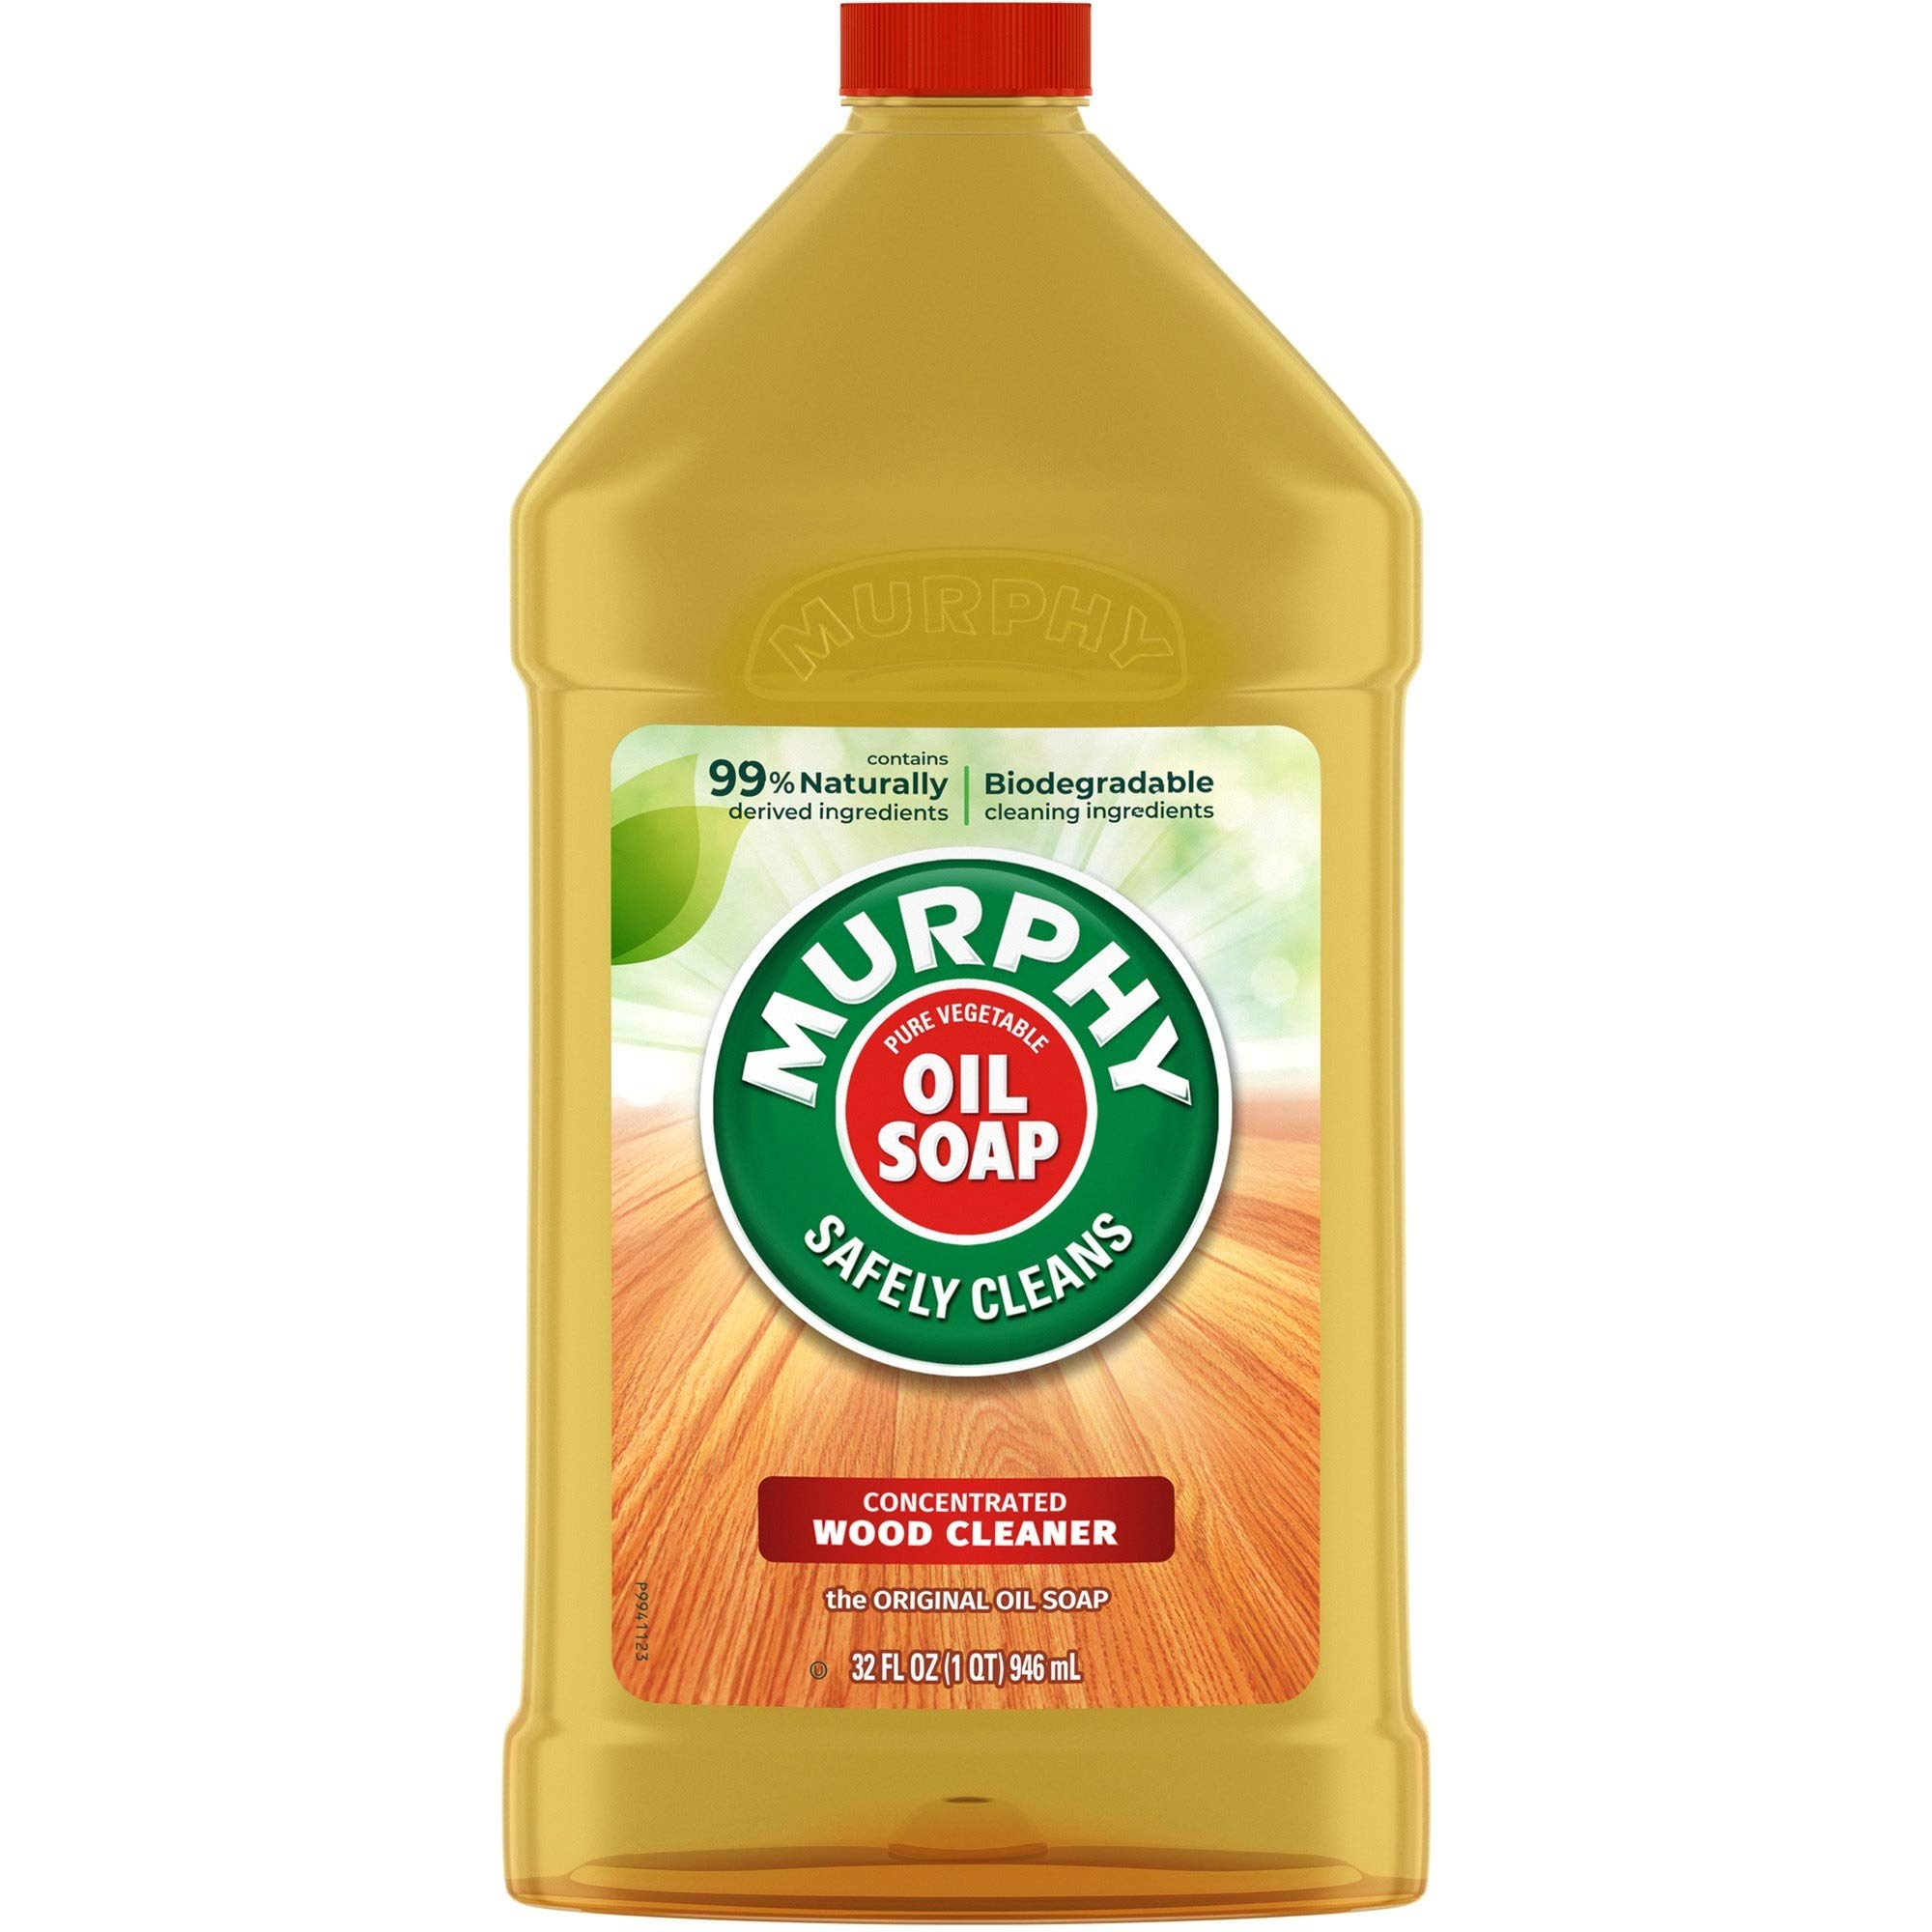 Murphy's Oil Soap Original Wood Cleaner - 32 fluid ounce